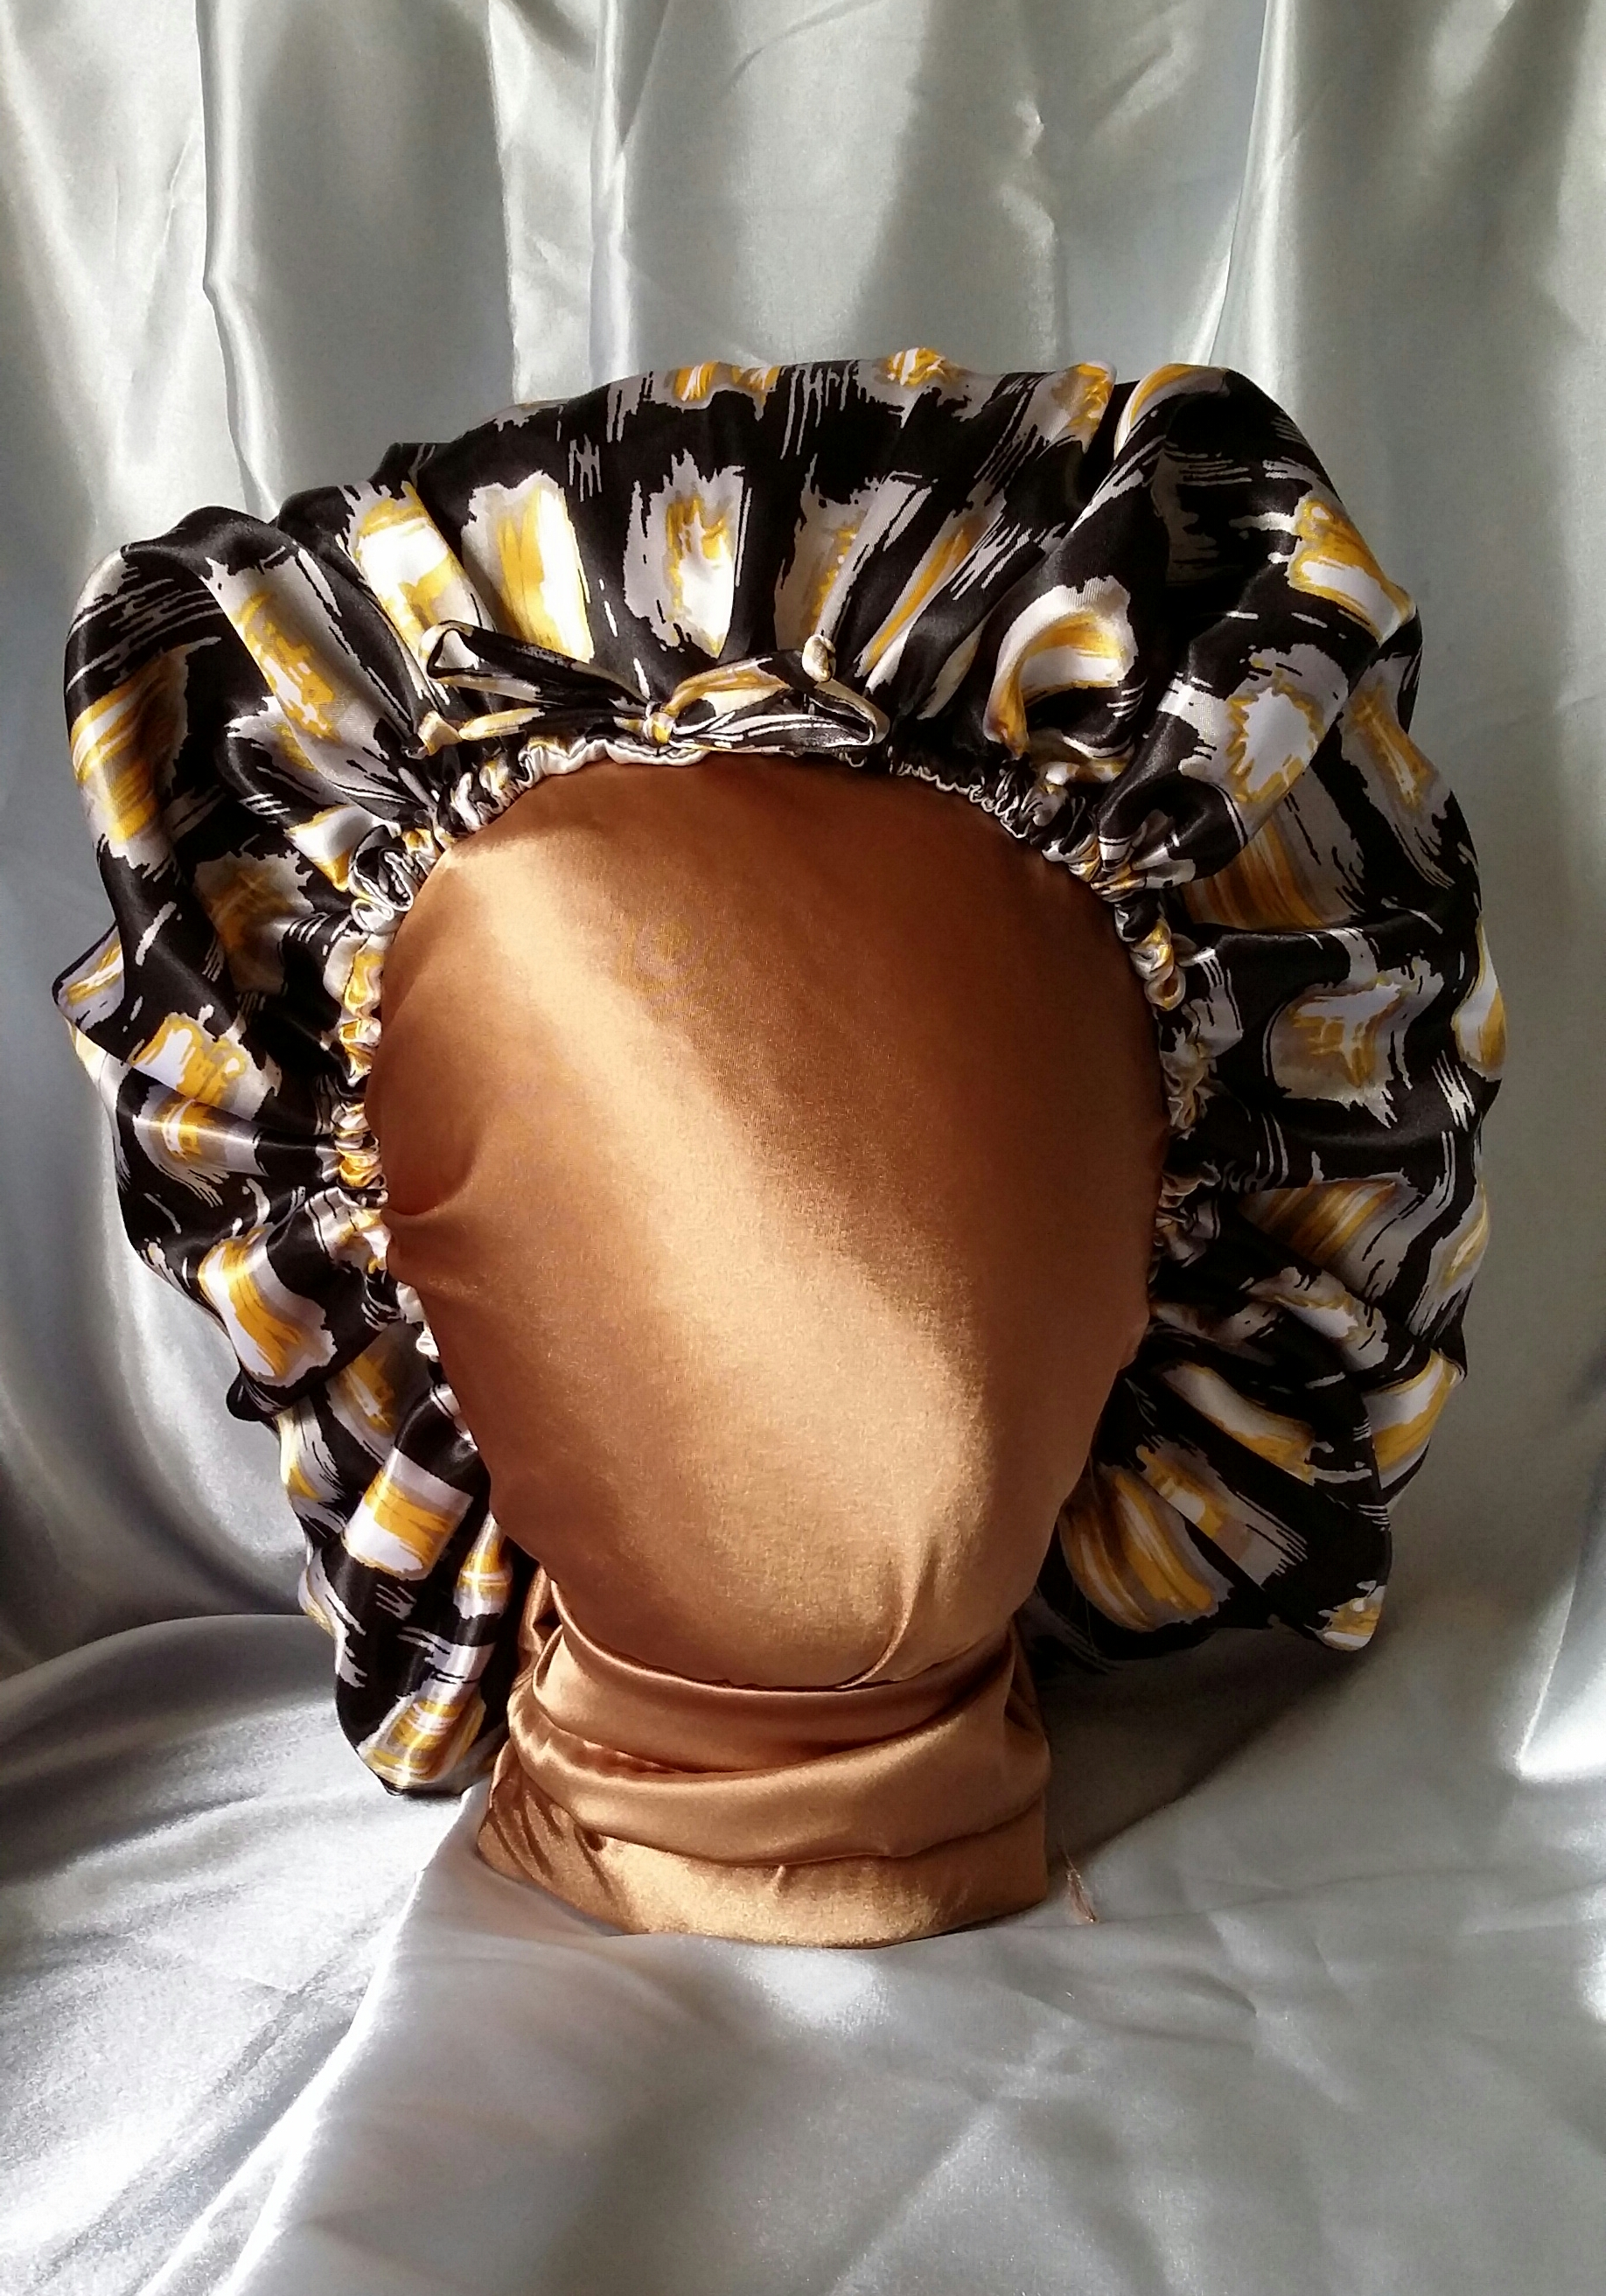 Bonnet Satin Angelbonnets™ Ready-made Charmeuse Satin Bonnet In Ikat